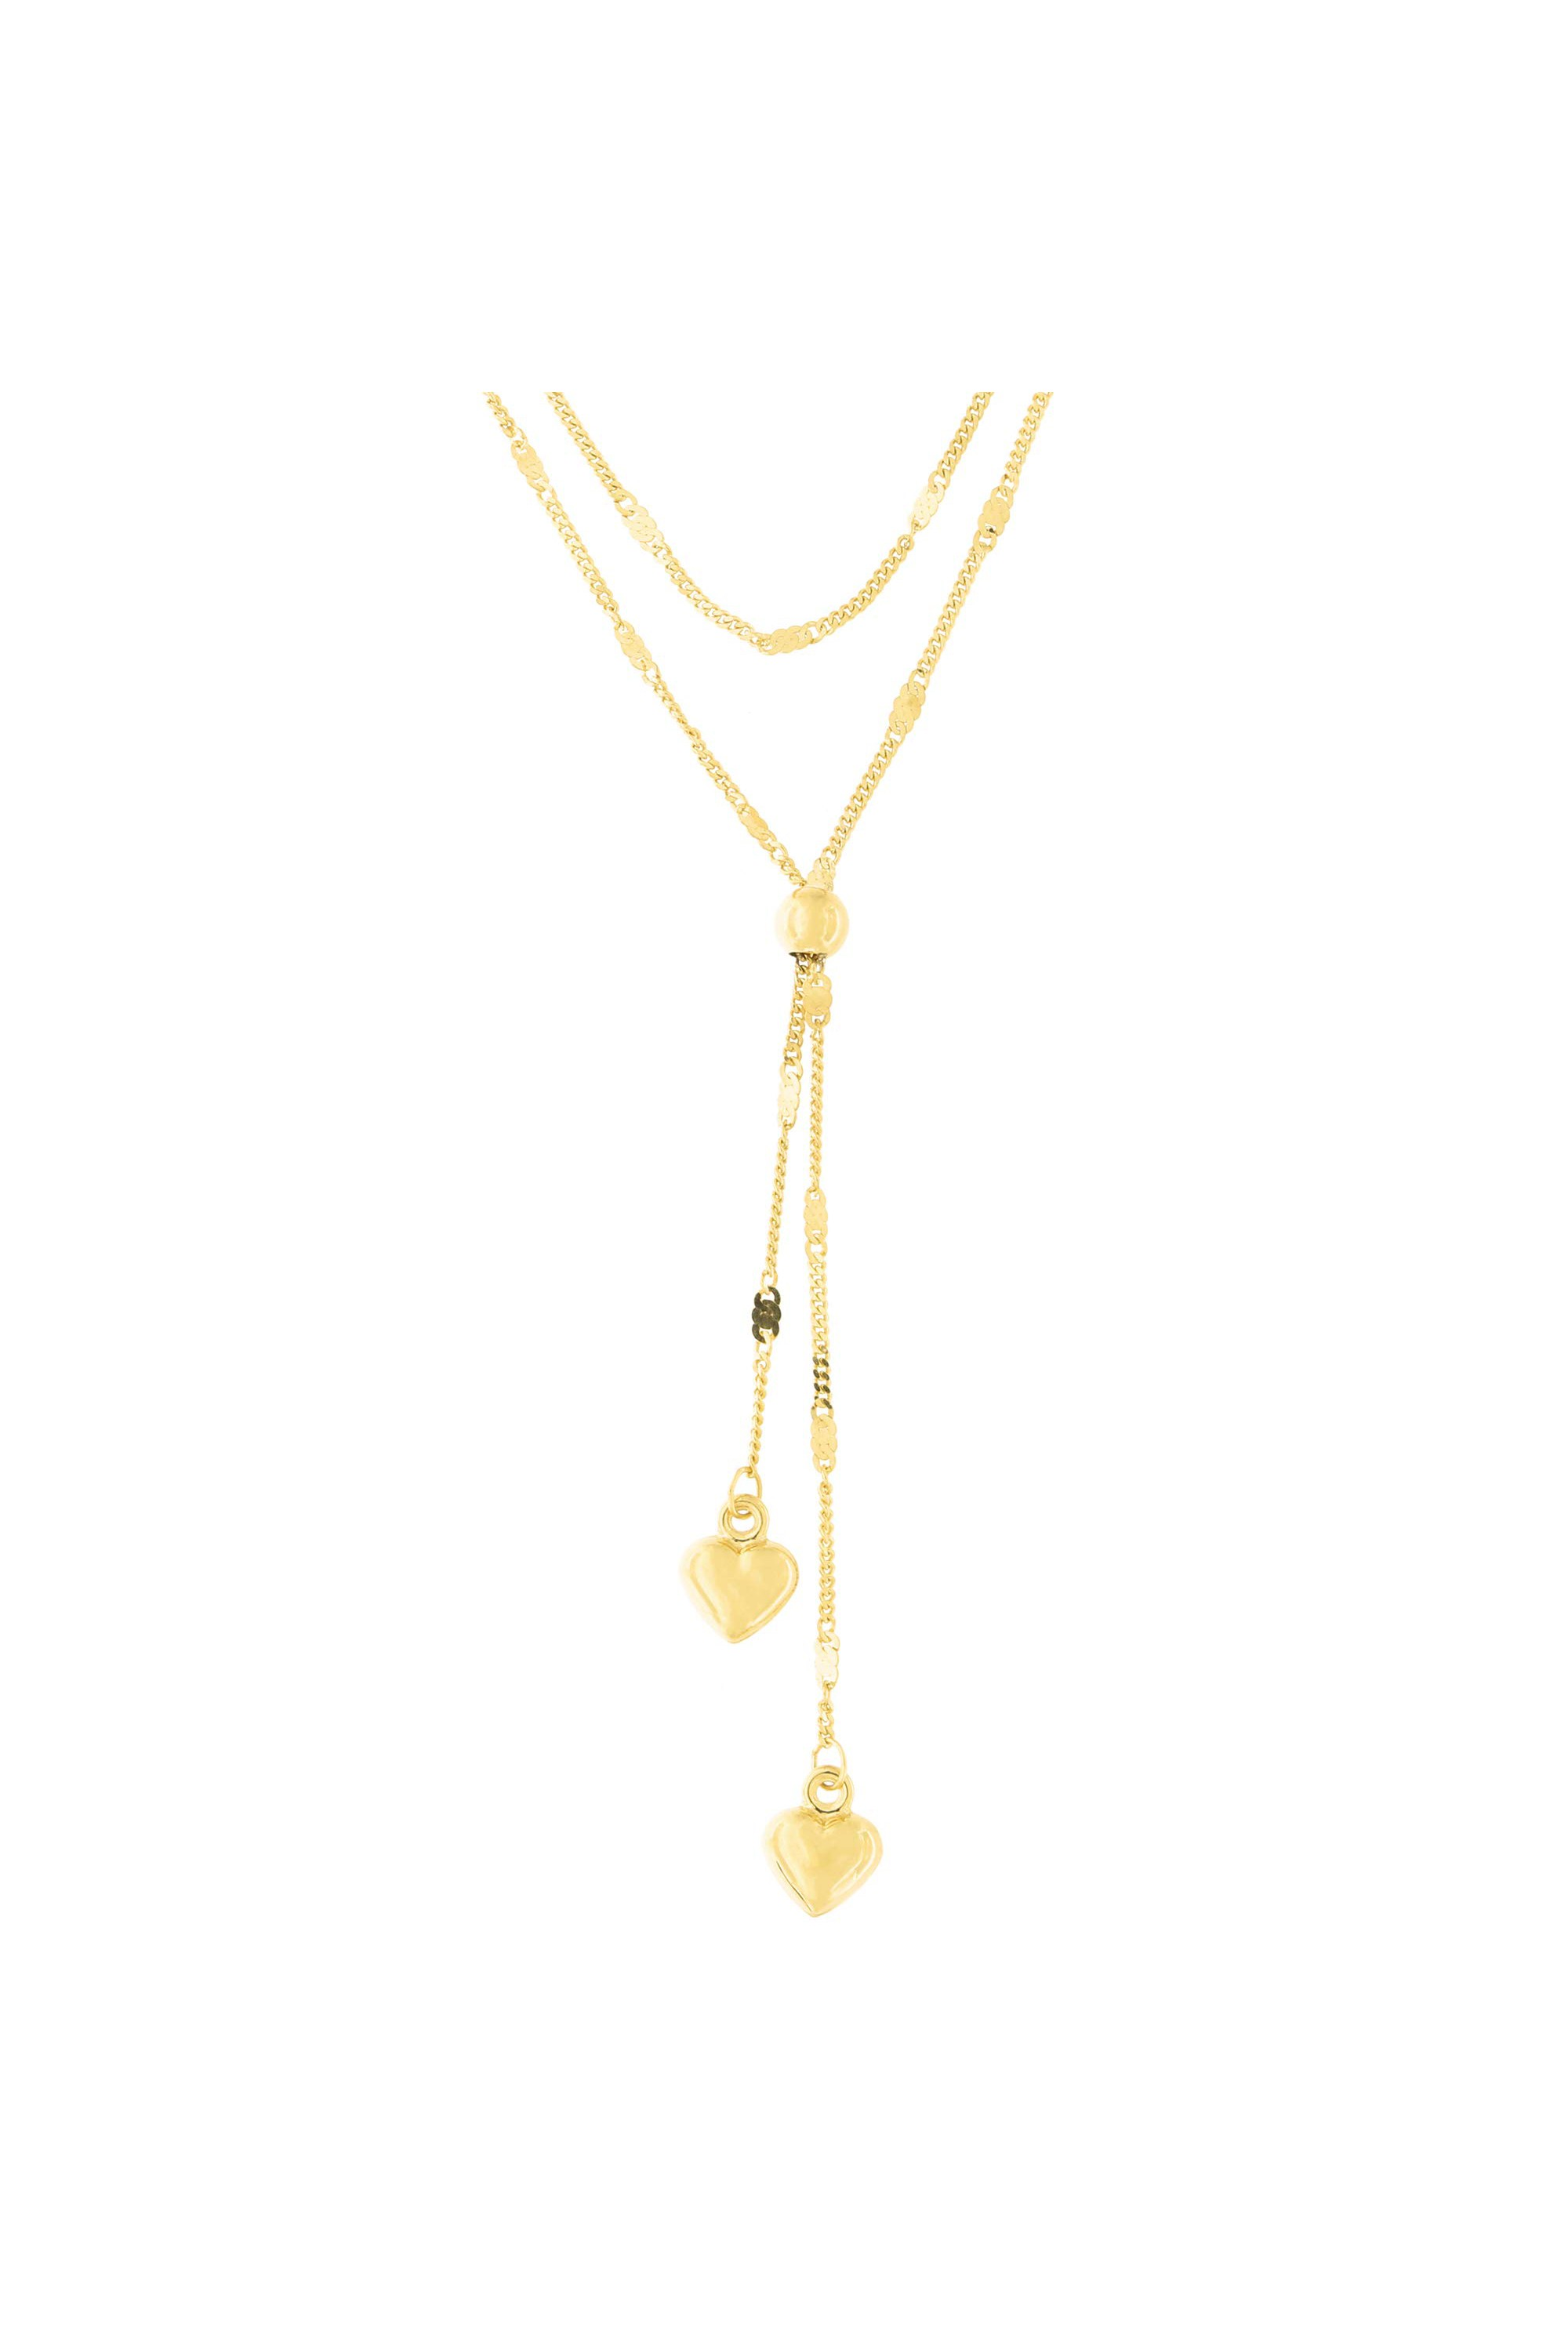 86a6cf7da12f6 14k Yellow Gold Double Layer Fancy Gourmette Chain Puffed Hearts Lariat  Necklace, 17